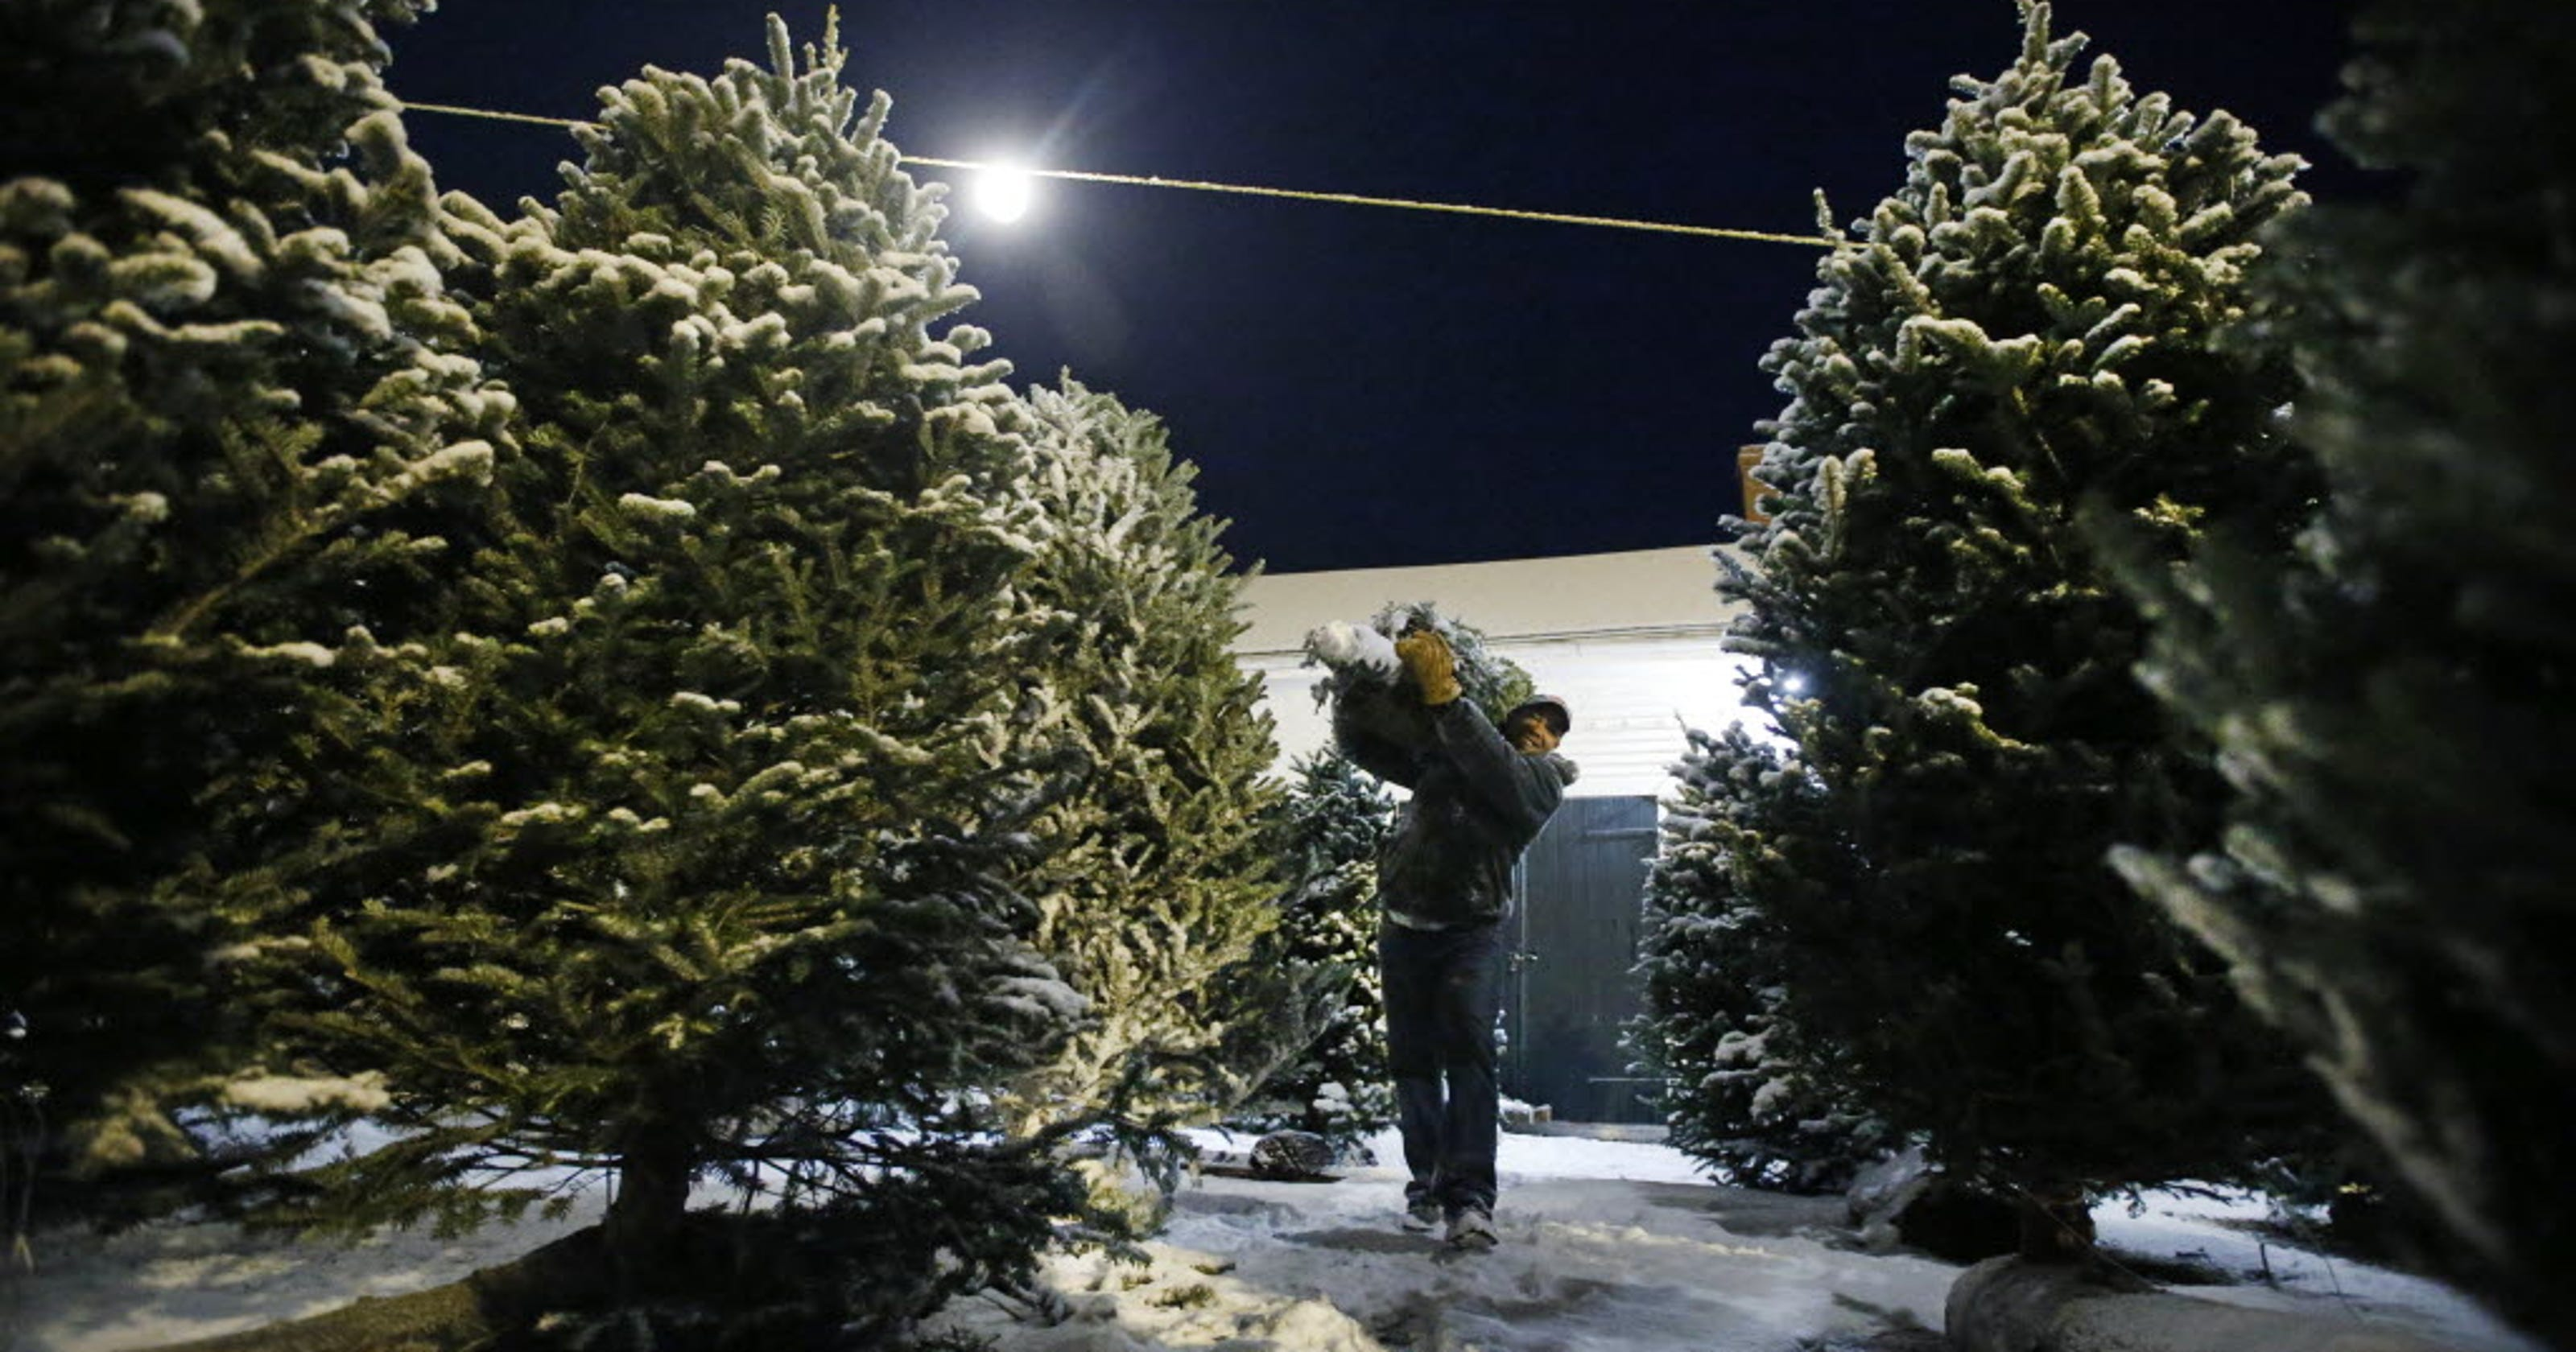 Which Christmas Tree Is Greener, Real Or Artificial?